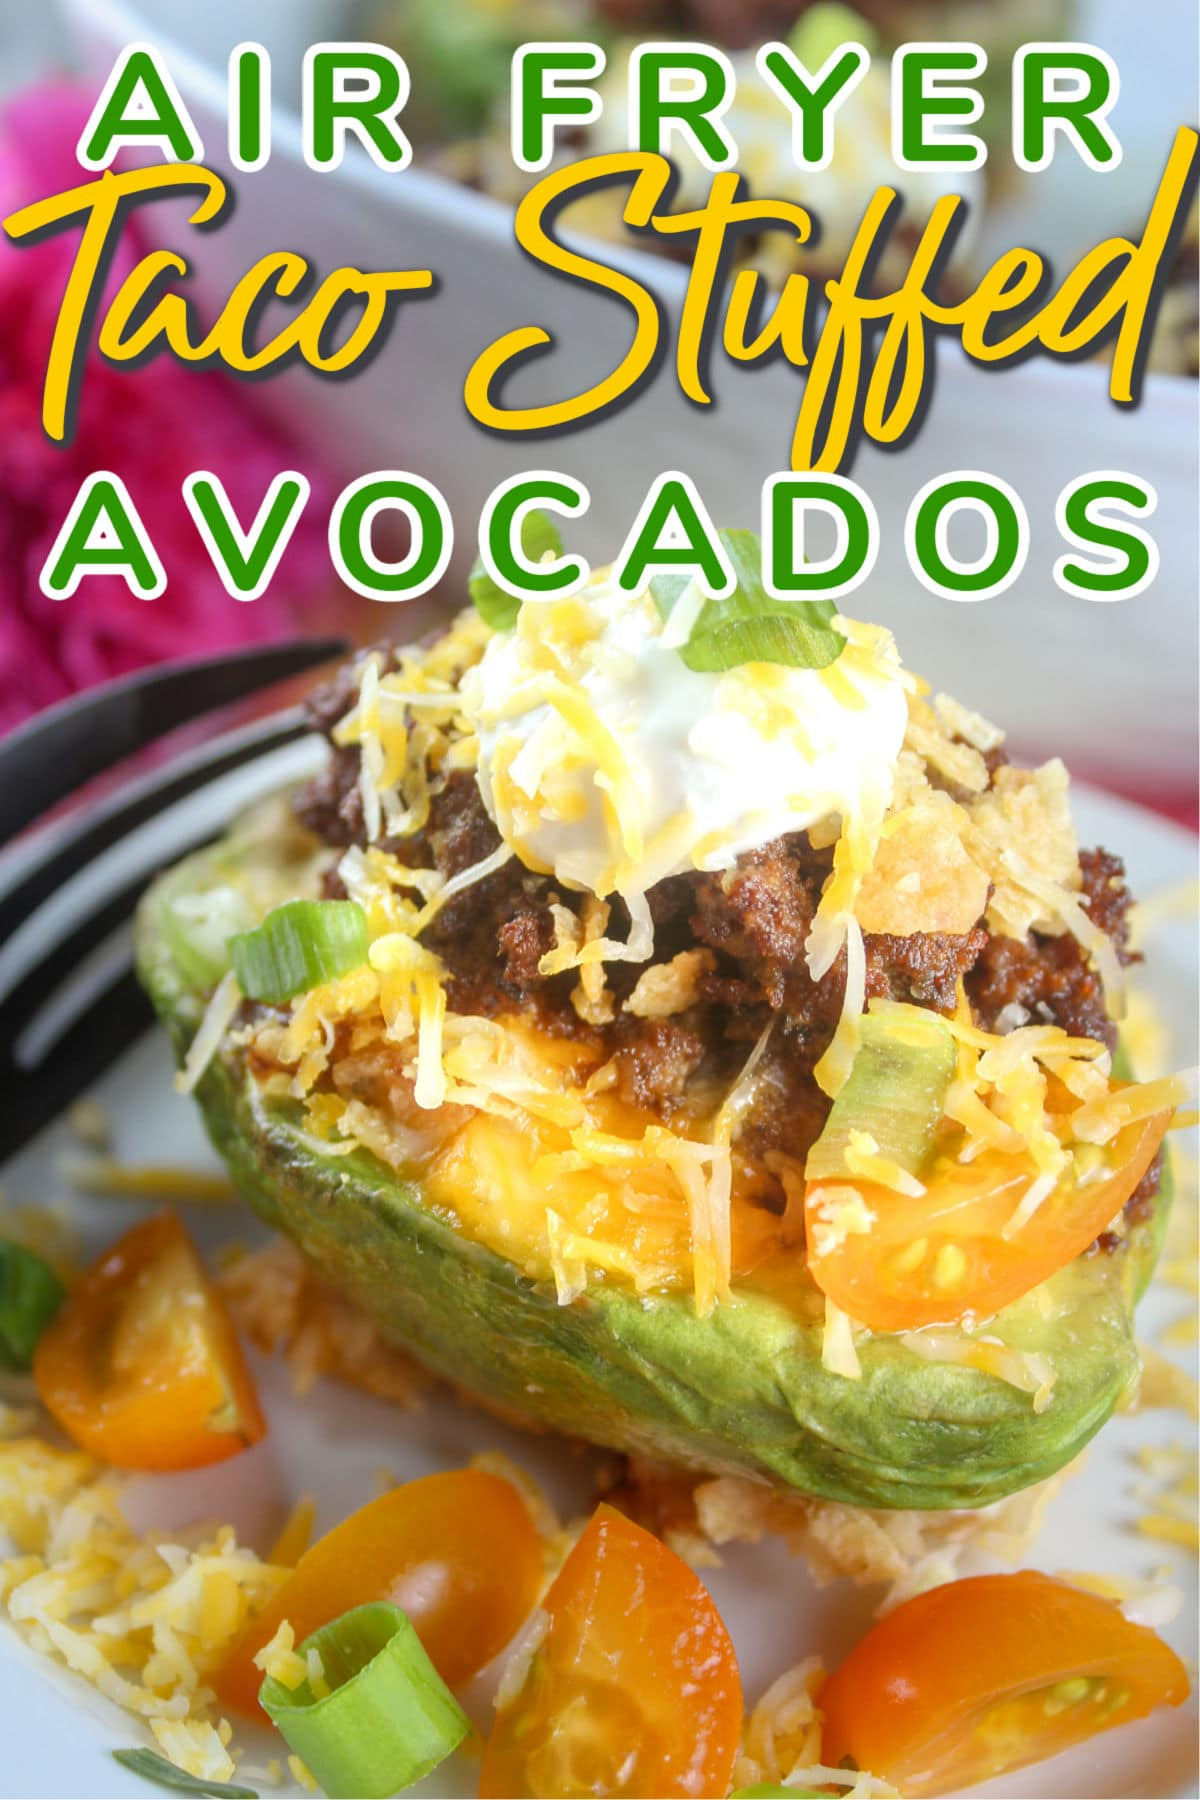 Taco Stuffed Avocados are a great dinner idea that the whole family will love and it's ready in less than 30 minutes! Creamy avocado filled with your favorite taco filling and dipped in crunchy tortilla chips! Yum!  via @foodhussy